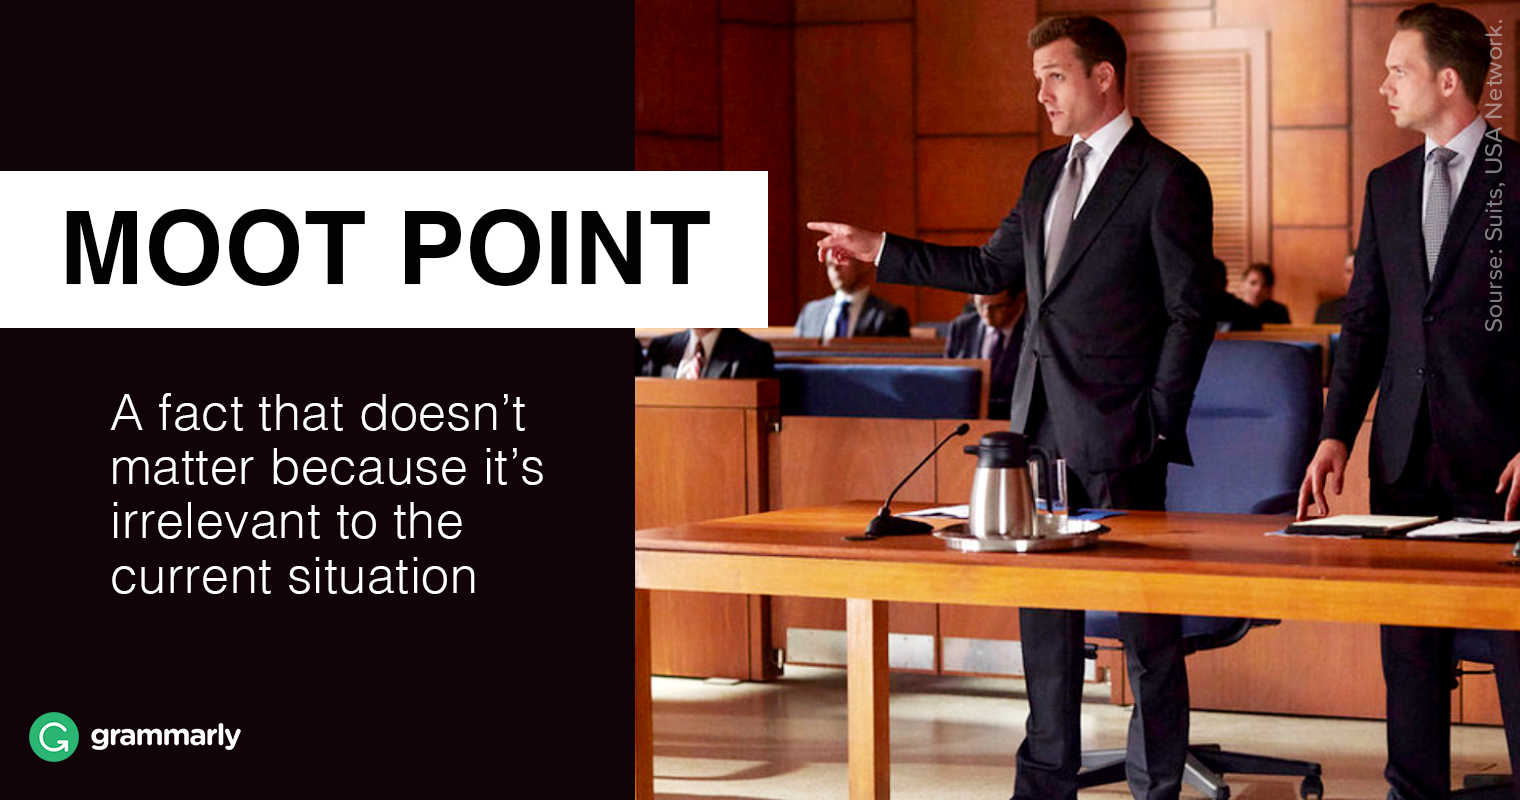 Moot Point image